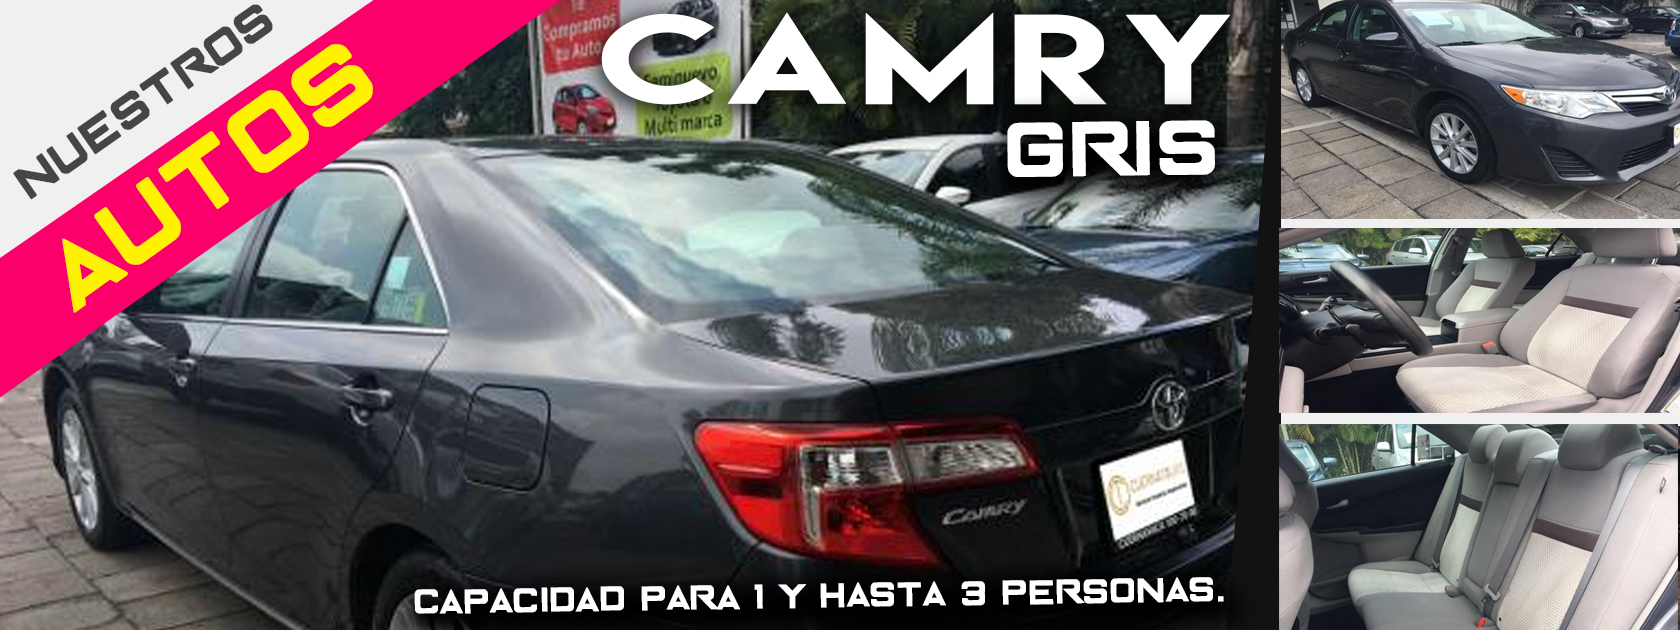 Camry gris